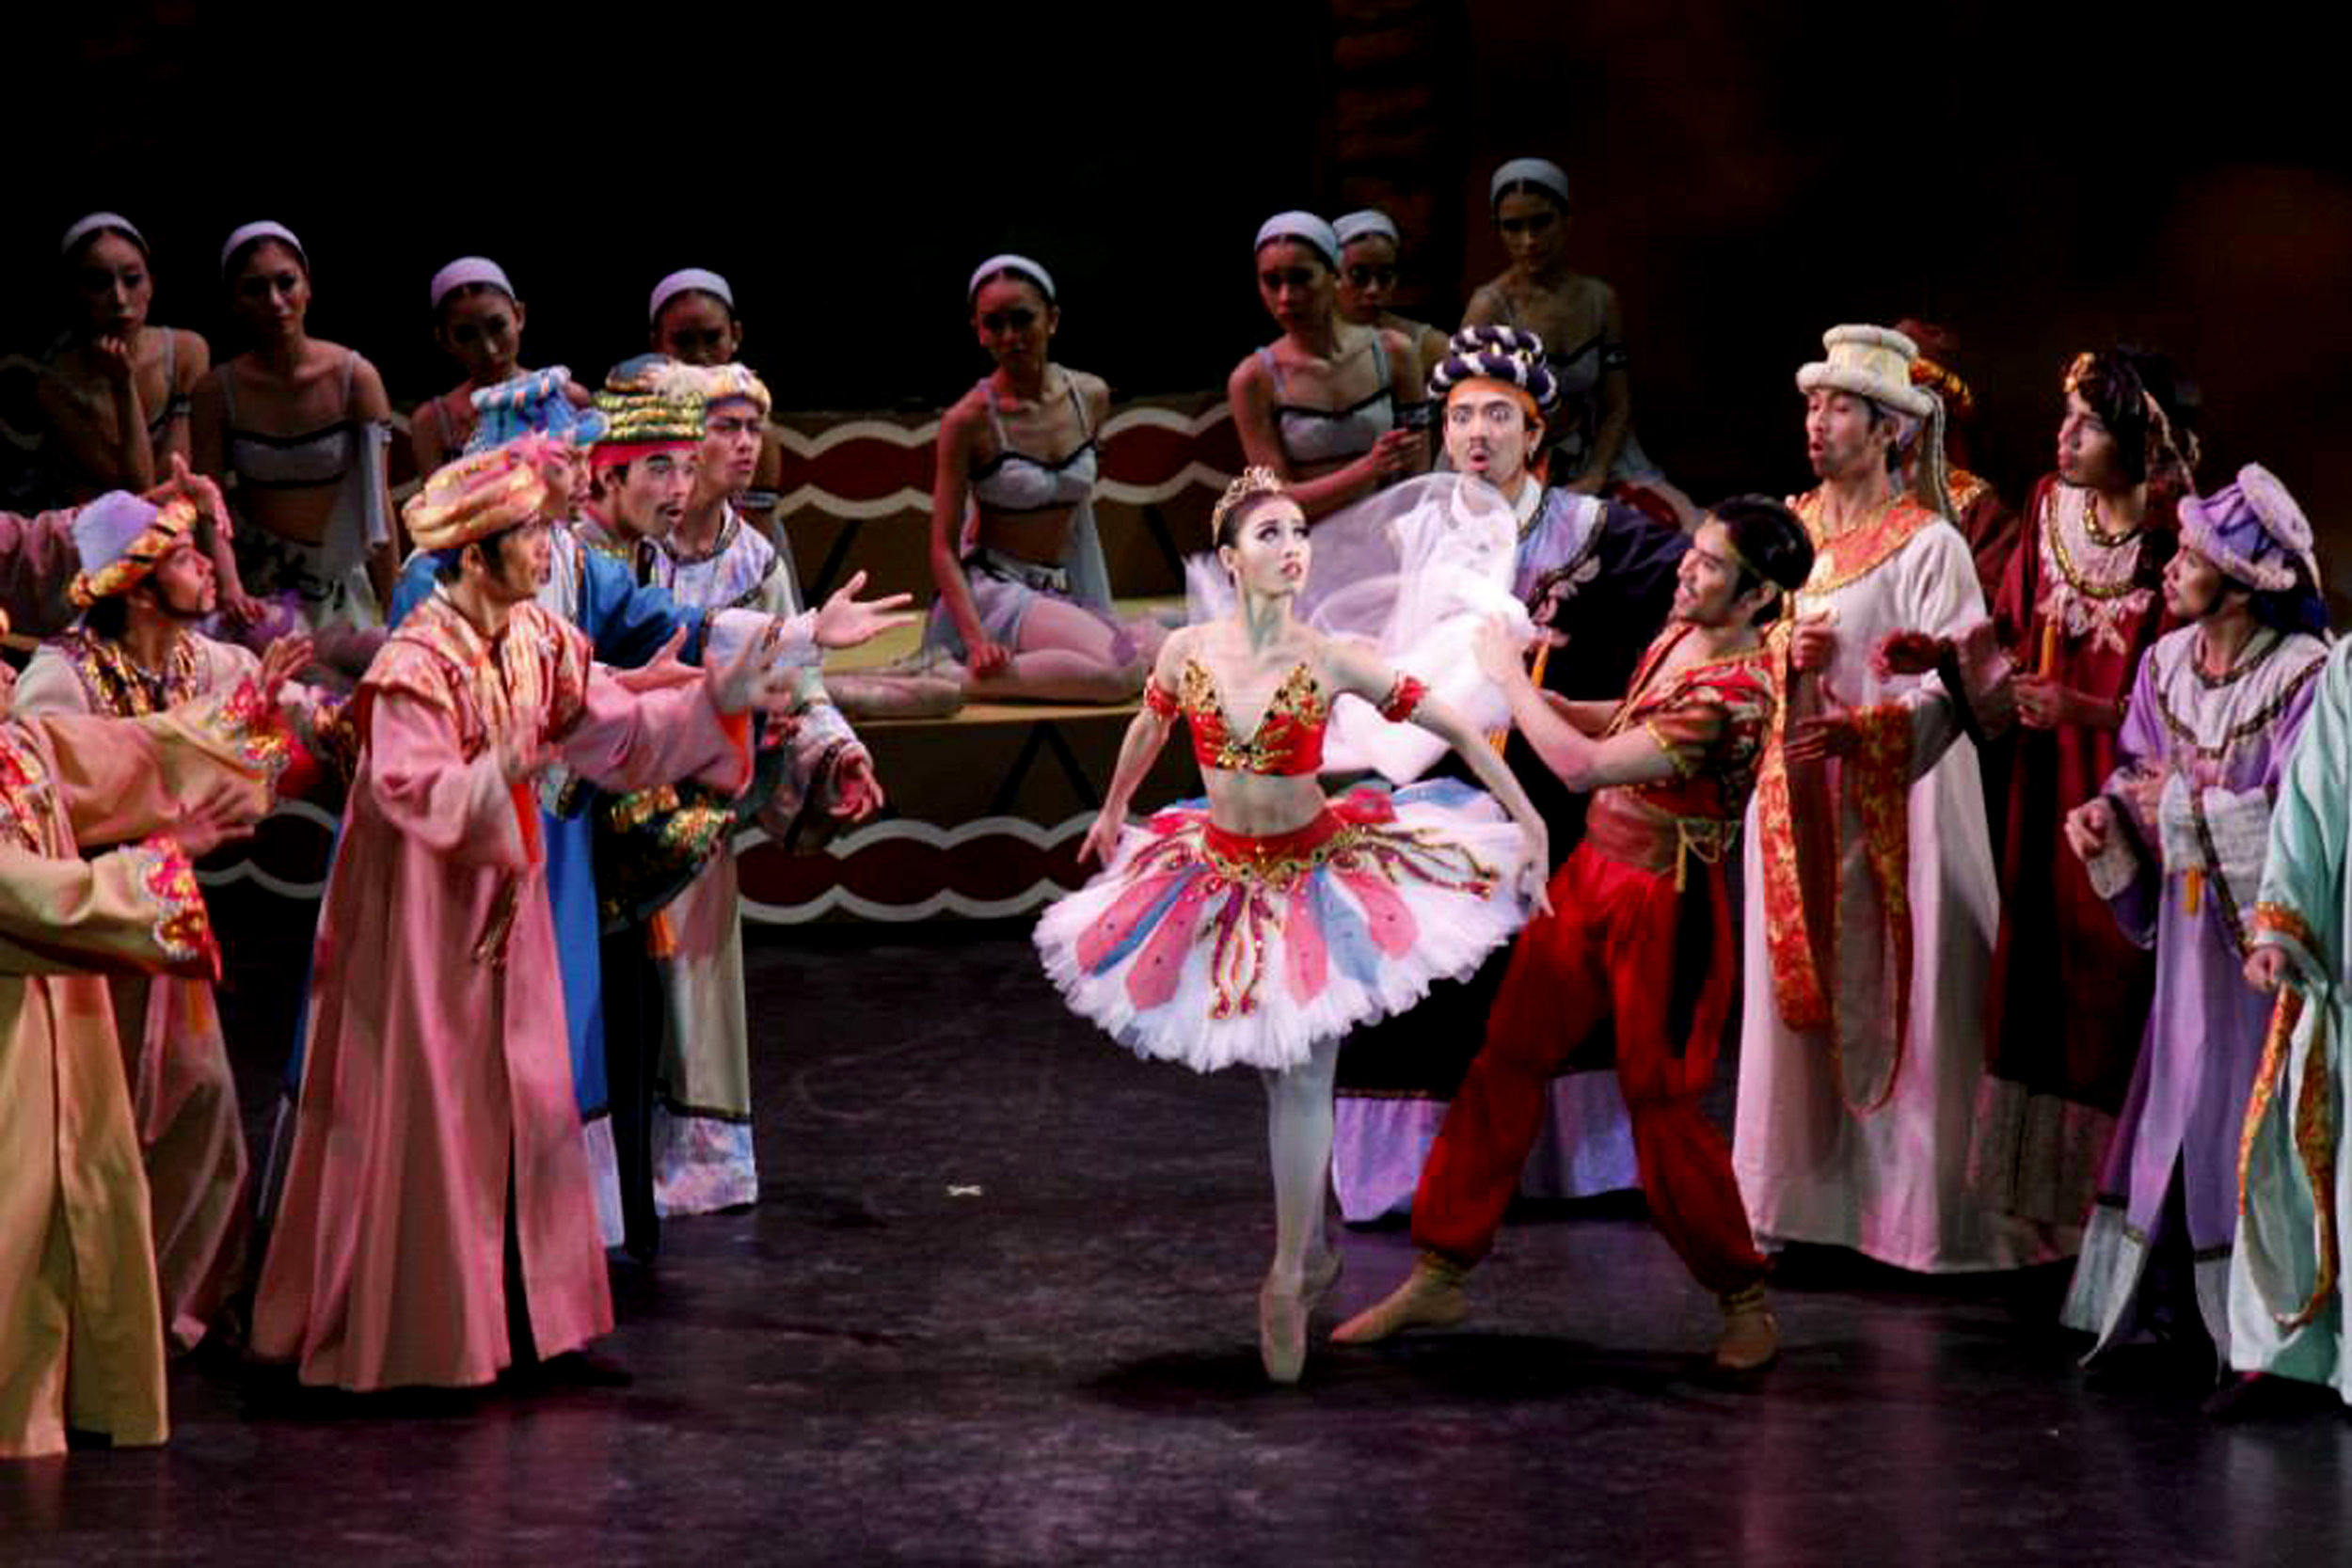 """Joan Emery Sia, now a principal dancer, is featured here in the """"reveal"""" scene with fellow principal dancer Romeo Peralta as Lankadem. She was among the four Gulnaras in the 2013 restaging of  Le Corsaire.  Photo by Jimmy Villanueva"""